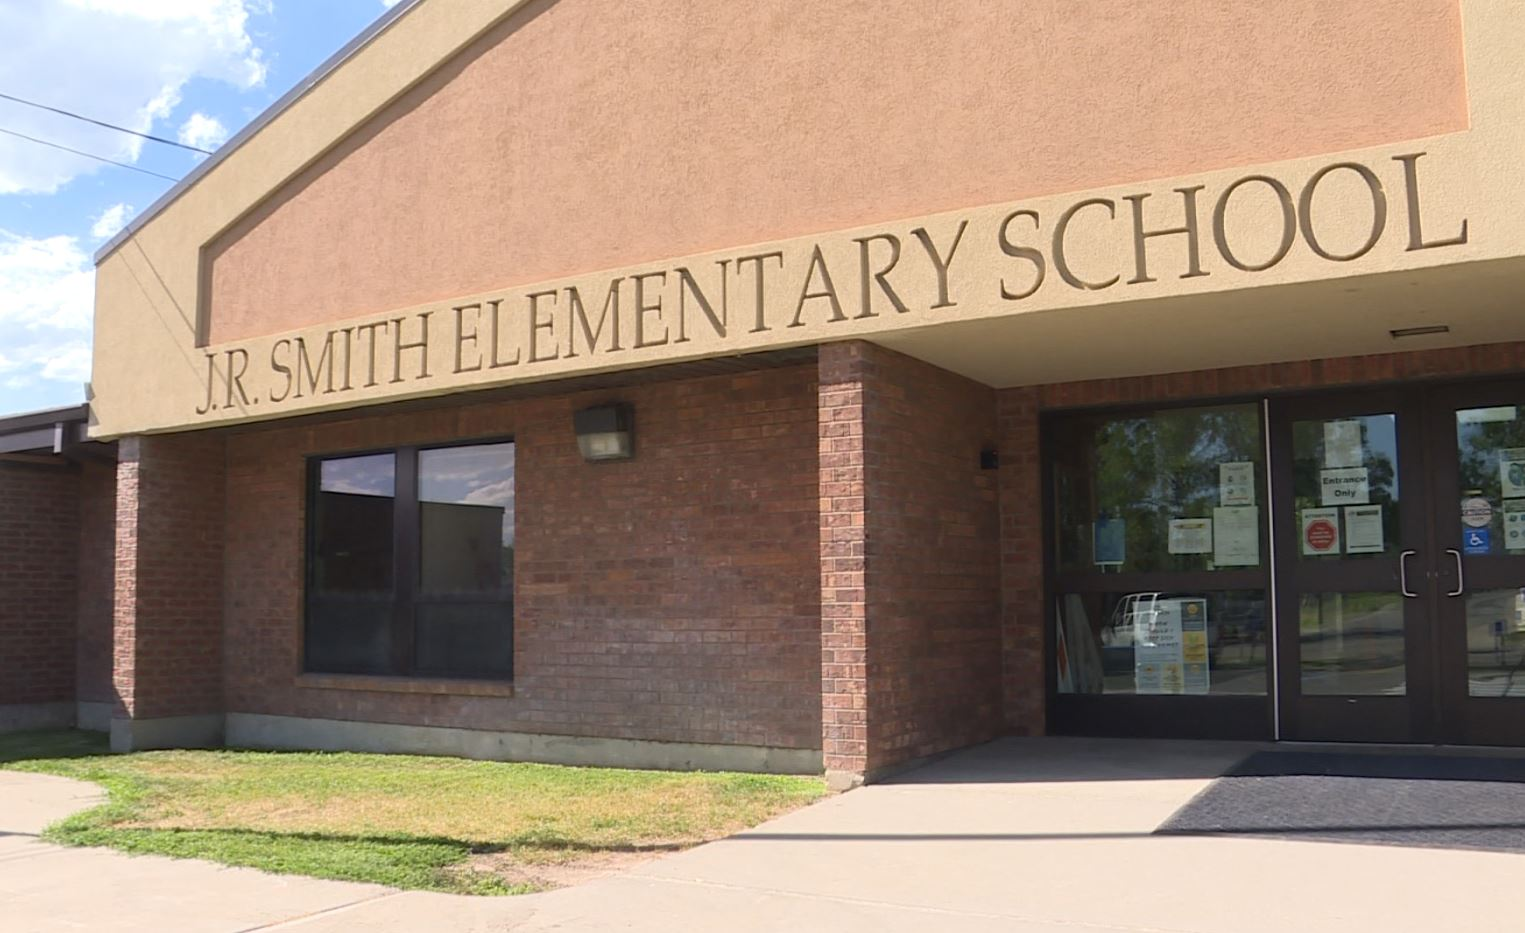 J.R. Smith Elementary School (Photo: KUTV)